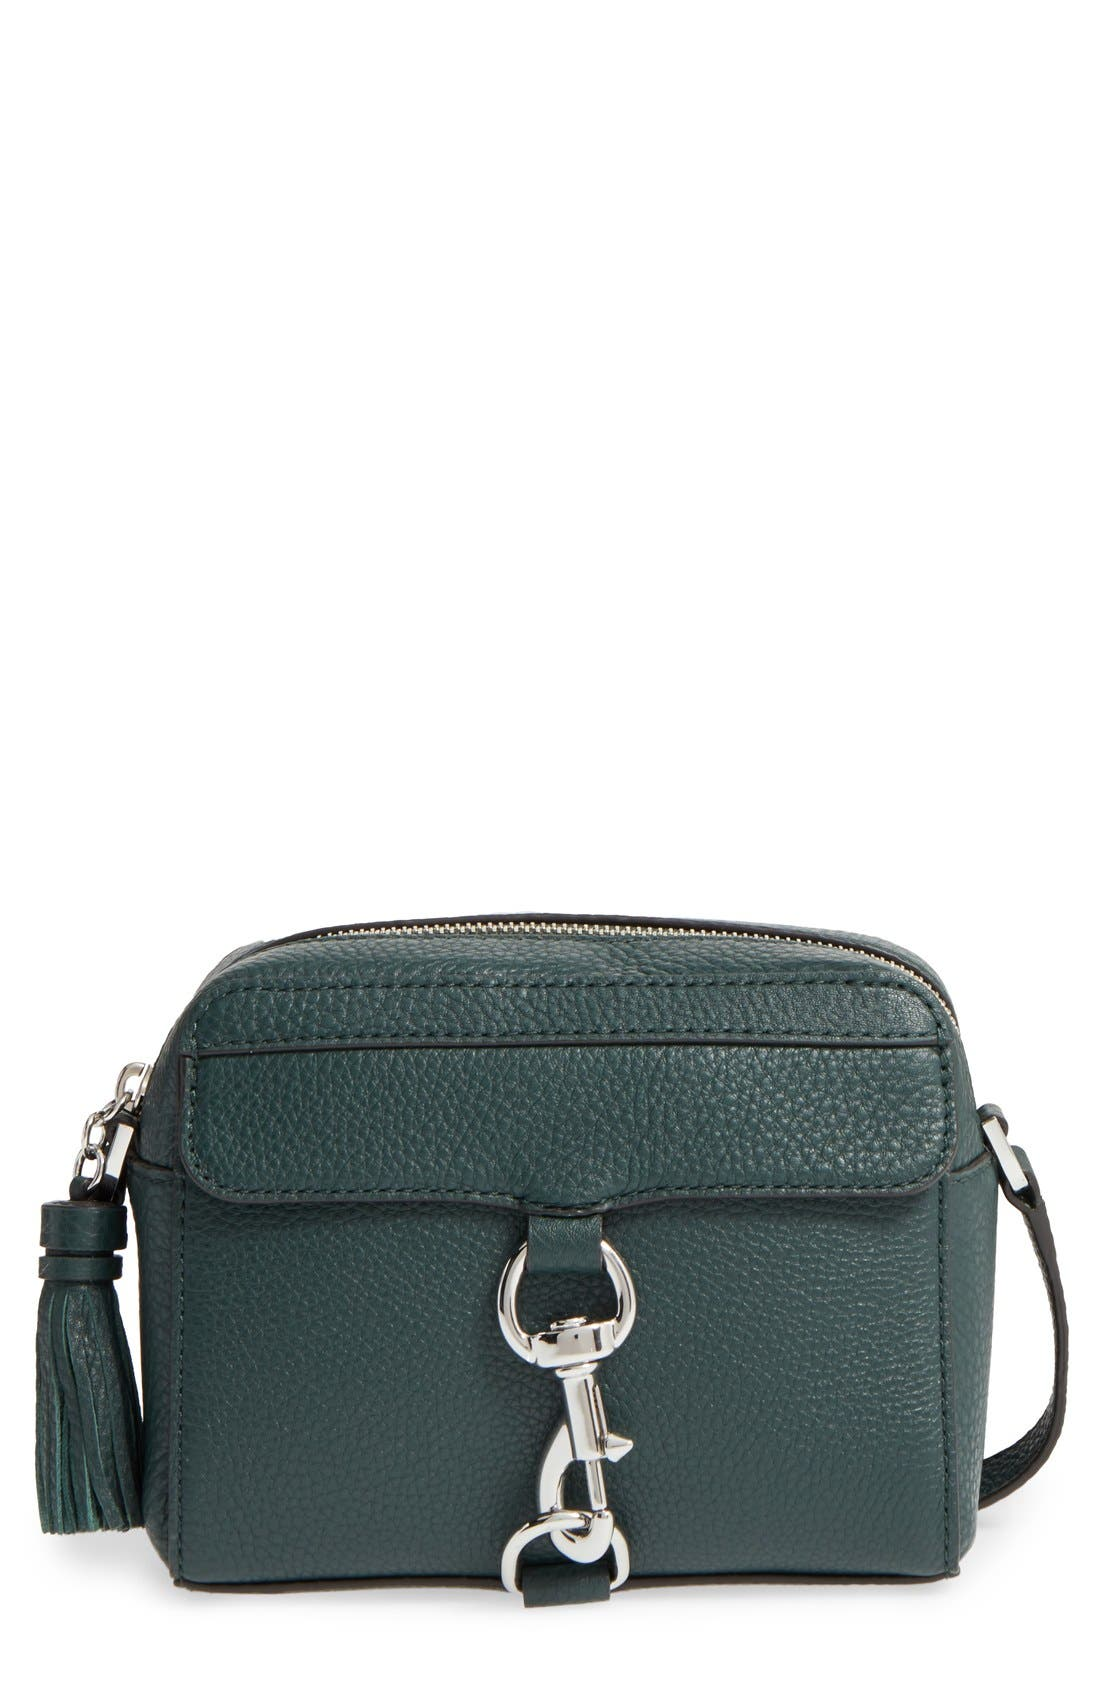 Alternate Image 1 Selected - Rebecca Minkoff MAB Camera Bag